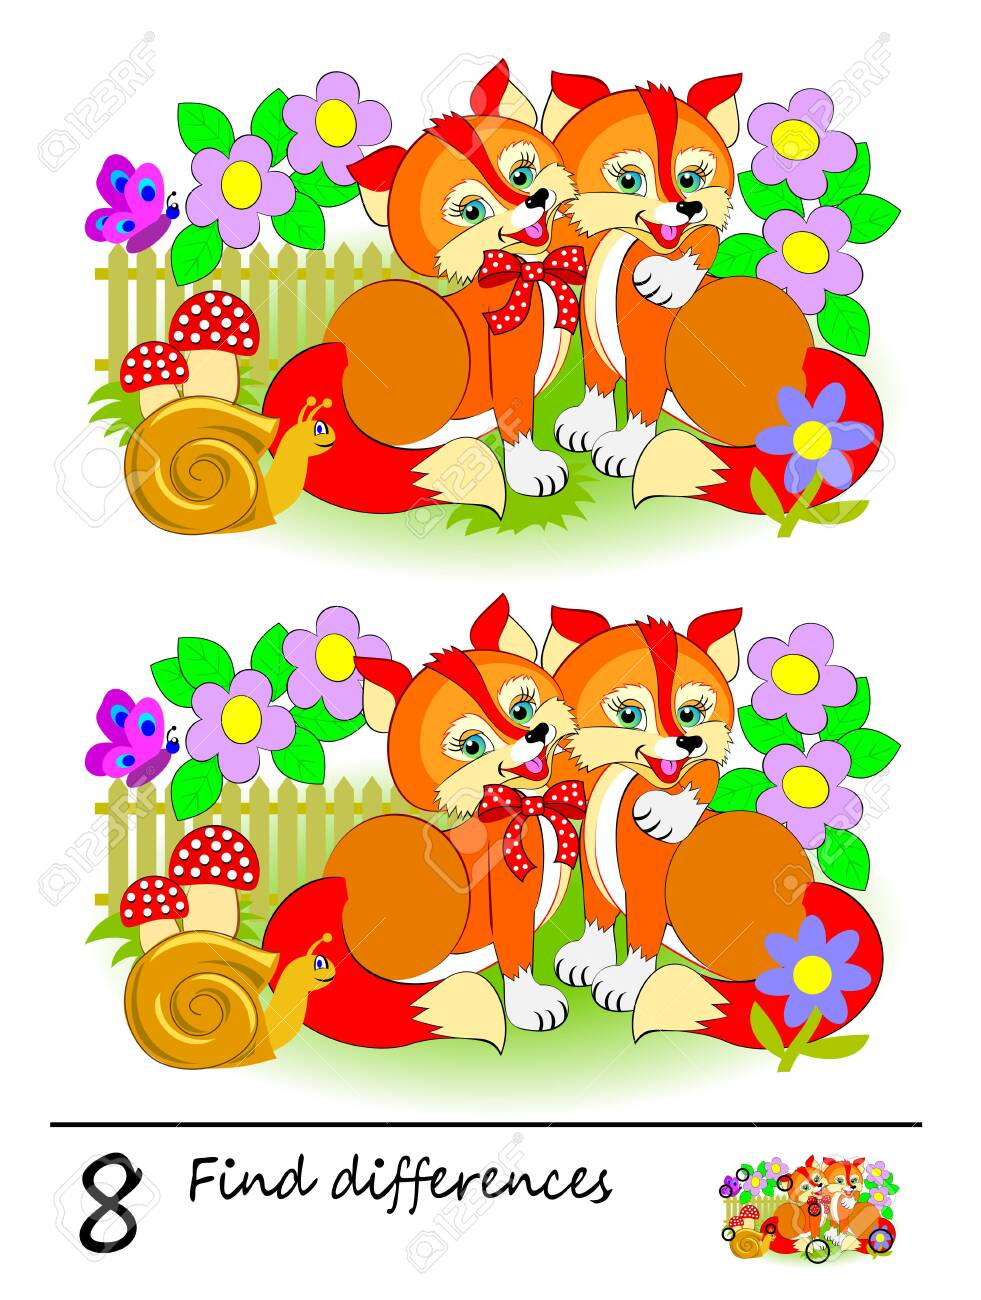 photo regarding Find the Differences Printable called Logic puzzle activity for little ones. Will need toward uncover 8 variations. Printable..